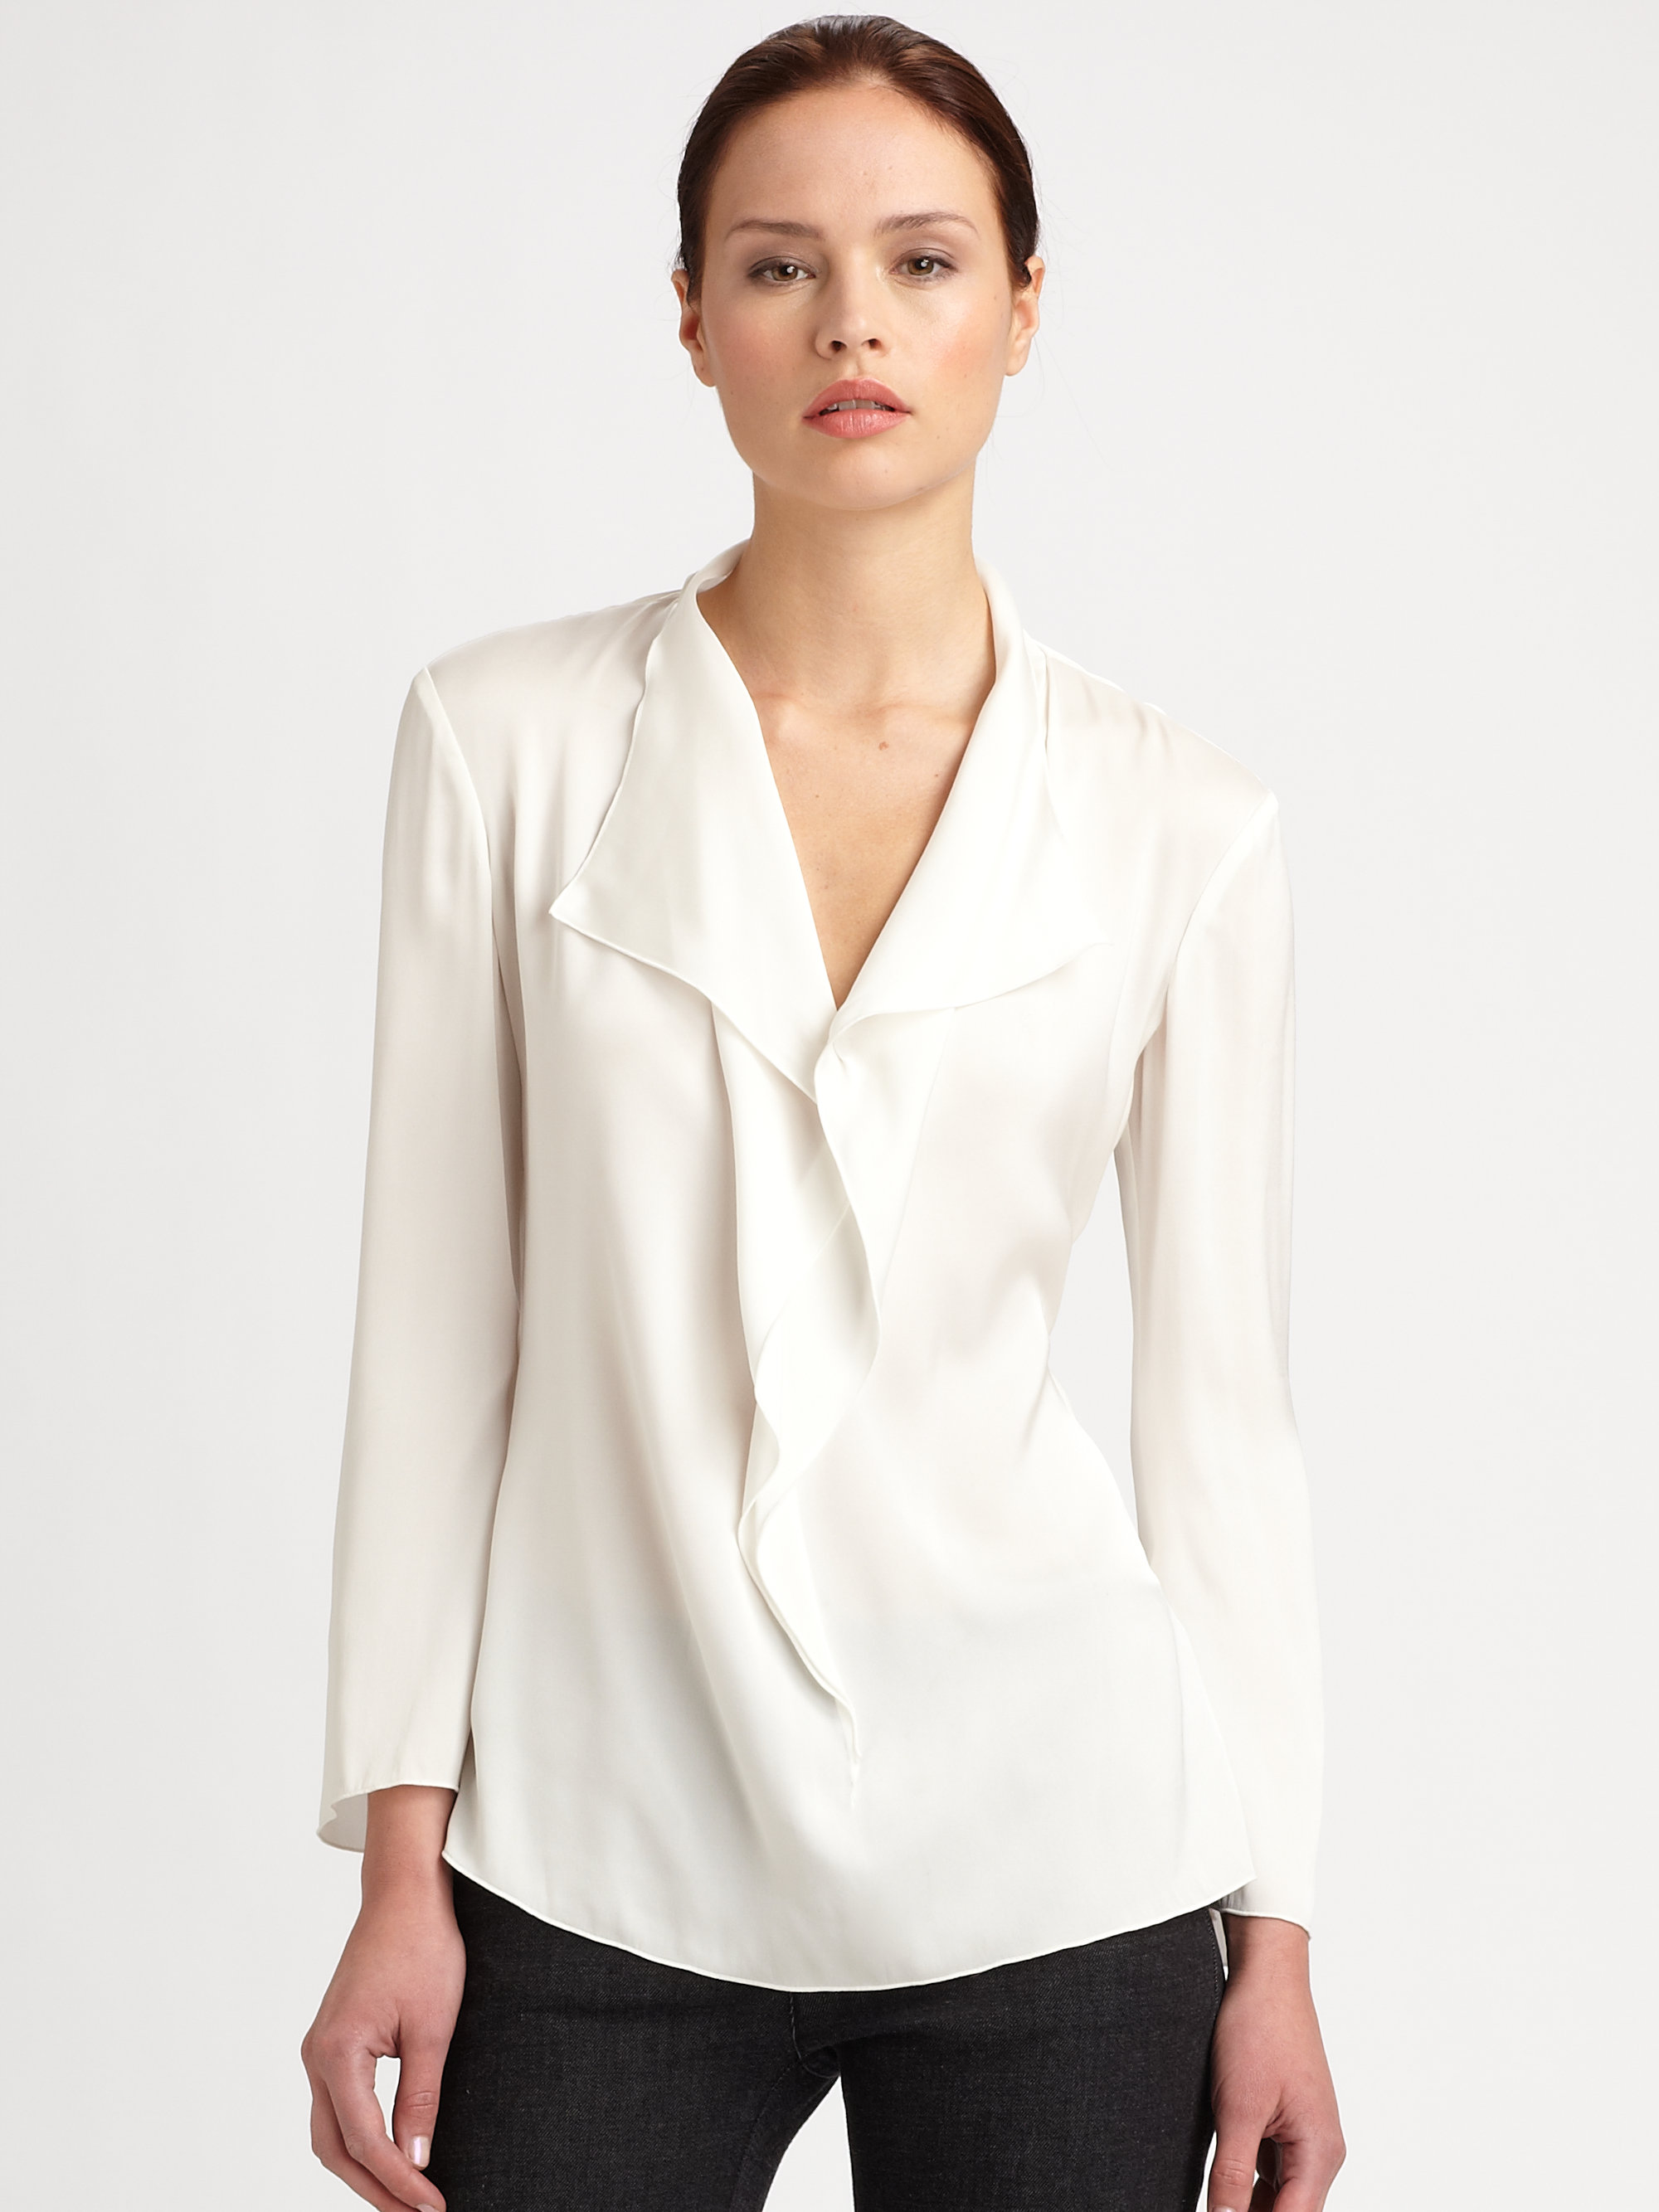 salestopp1se.gq offers silk ruffle blouse products. About 49% of these are ladies' blouses & tops, 25% are plus size shirts & blouses. A wide variety of silk ruffle blouse options are available to you, such as anti-pilling, anti-shrink, and breathable.